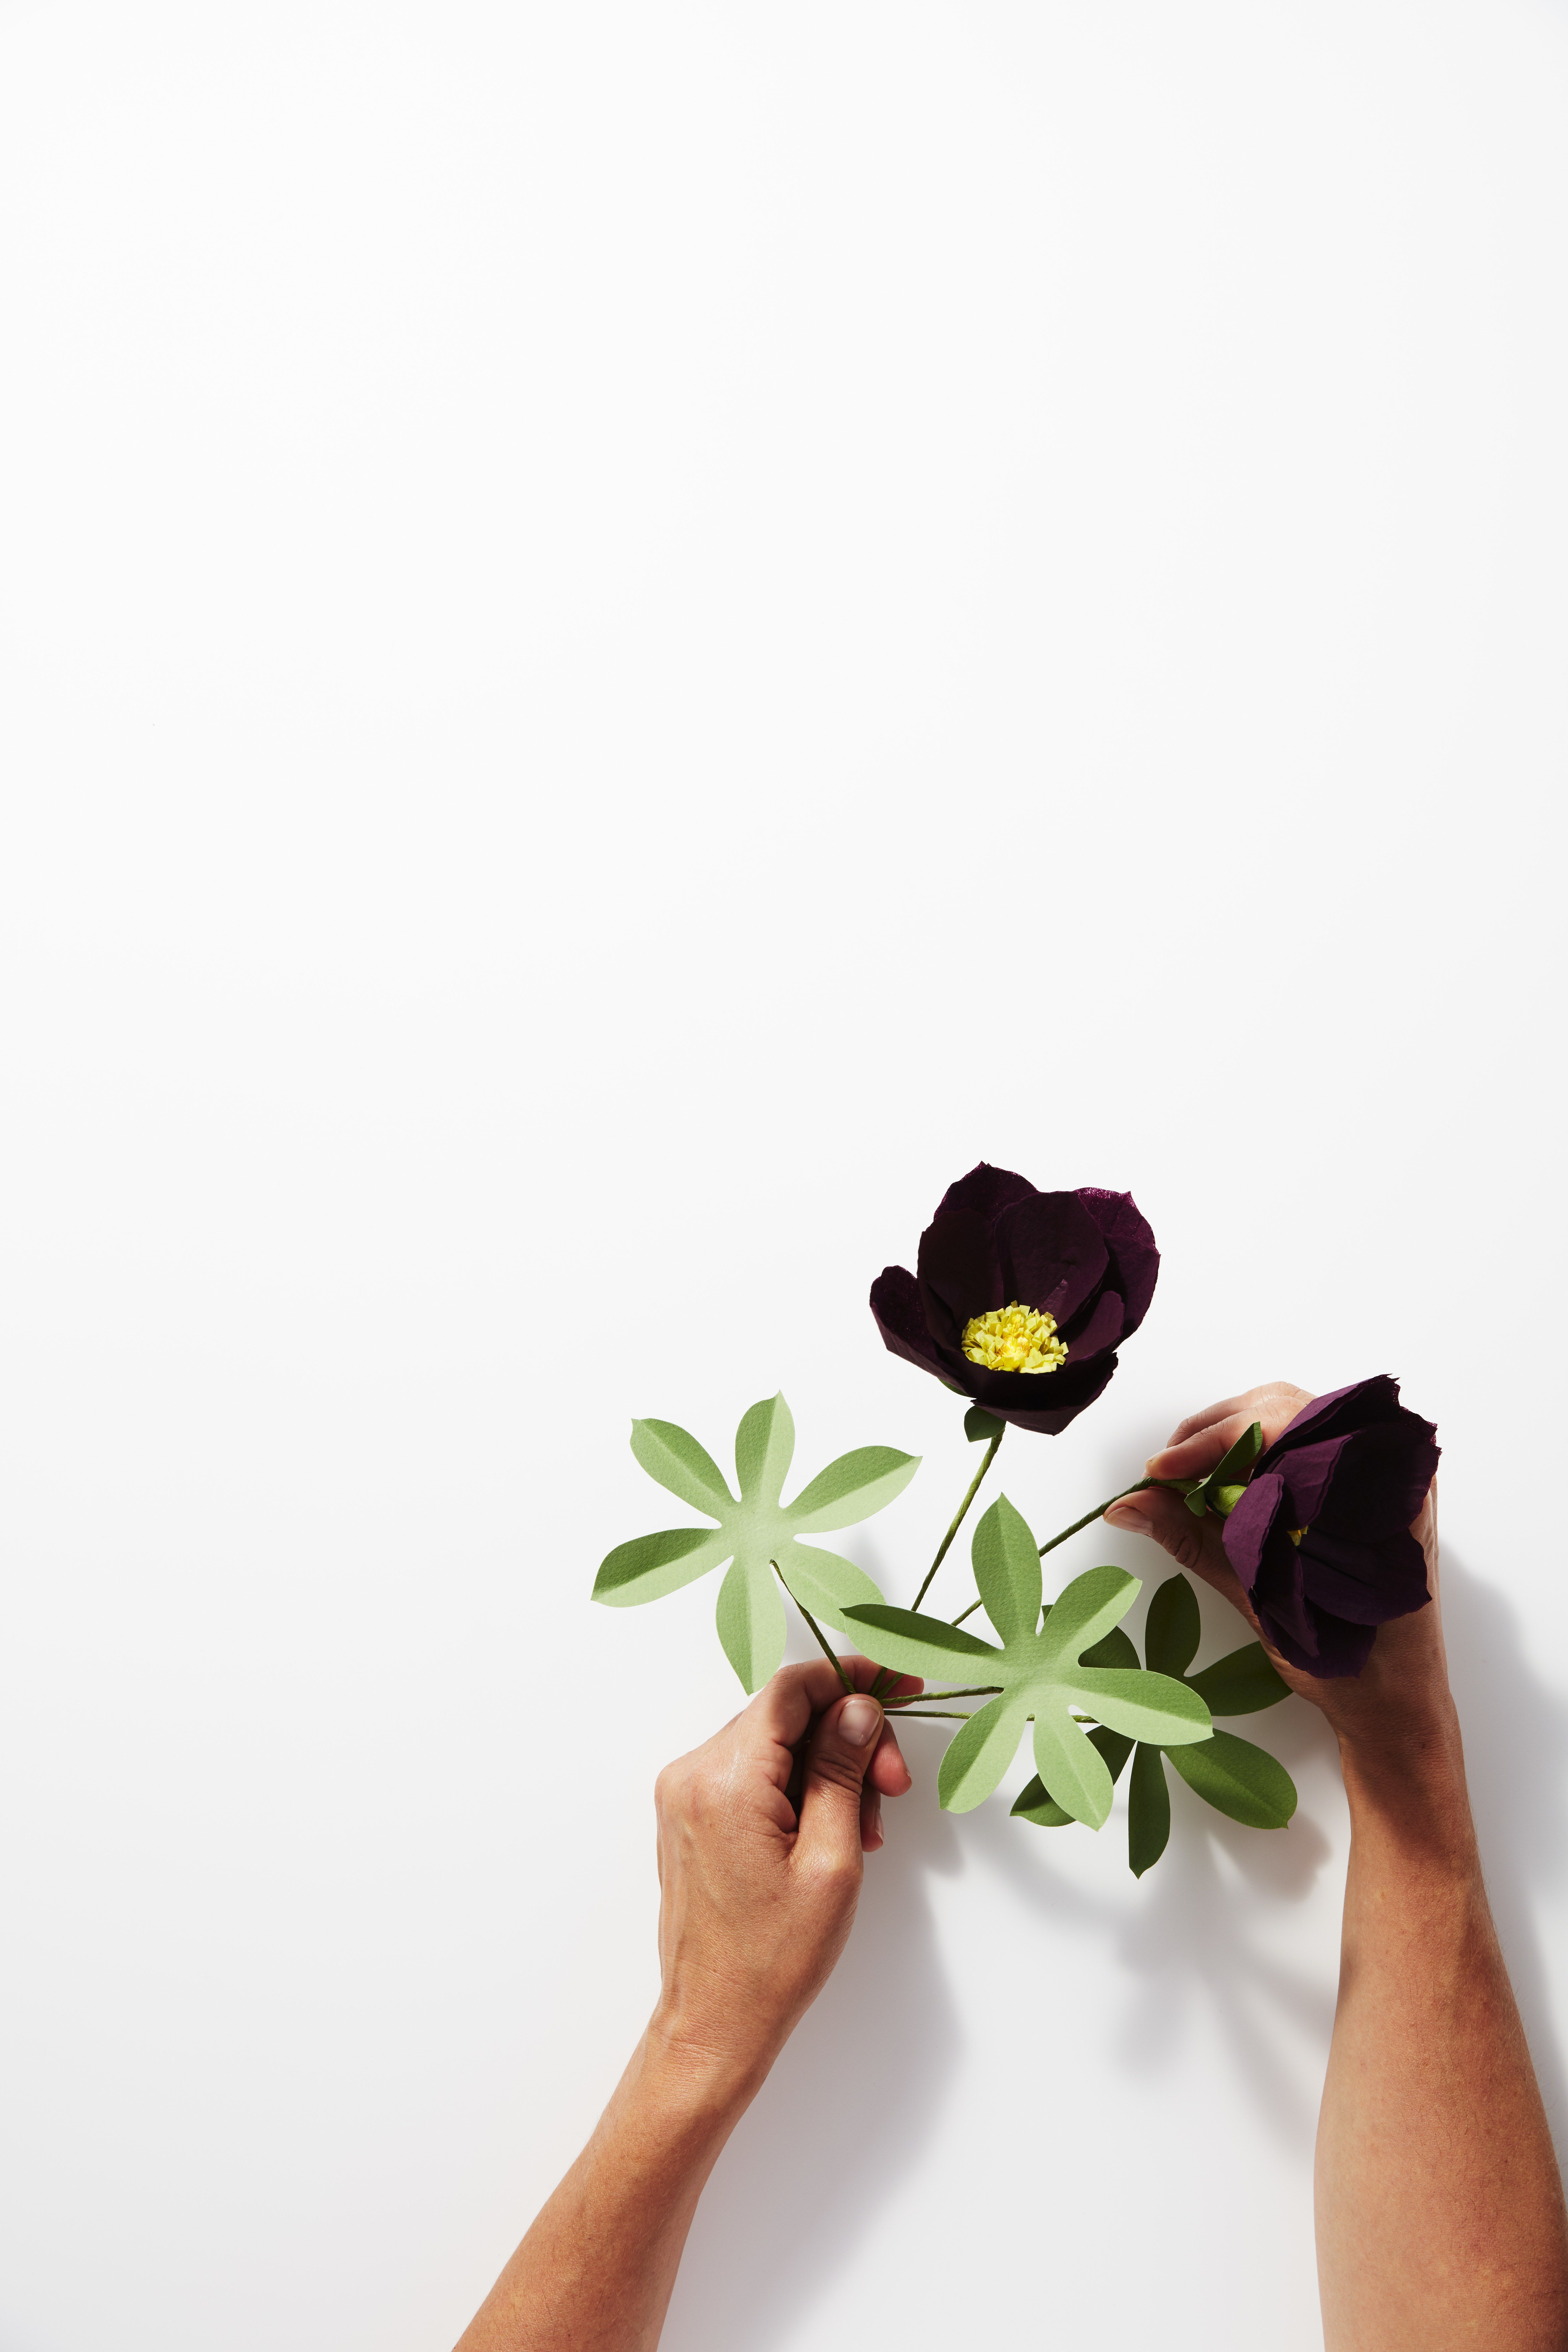 Paper Flowers The Global Ancient Roots Of A Contemporary Maker